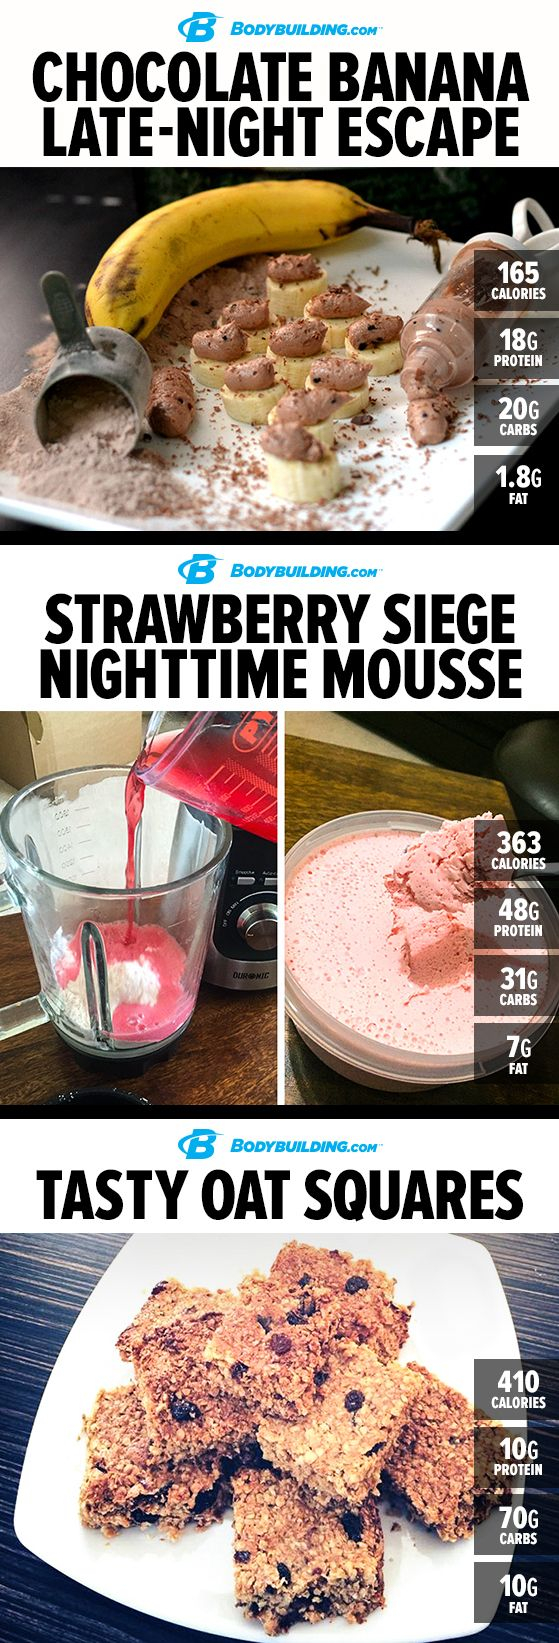 6 Sweet Nighttime Protein Treats. Make sure your last meal of the day is a tasty, muscle-building one with these sweet recipes.